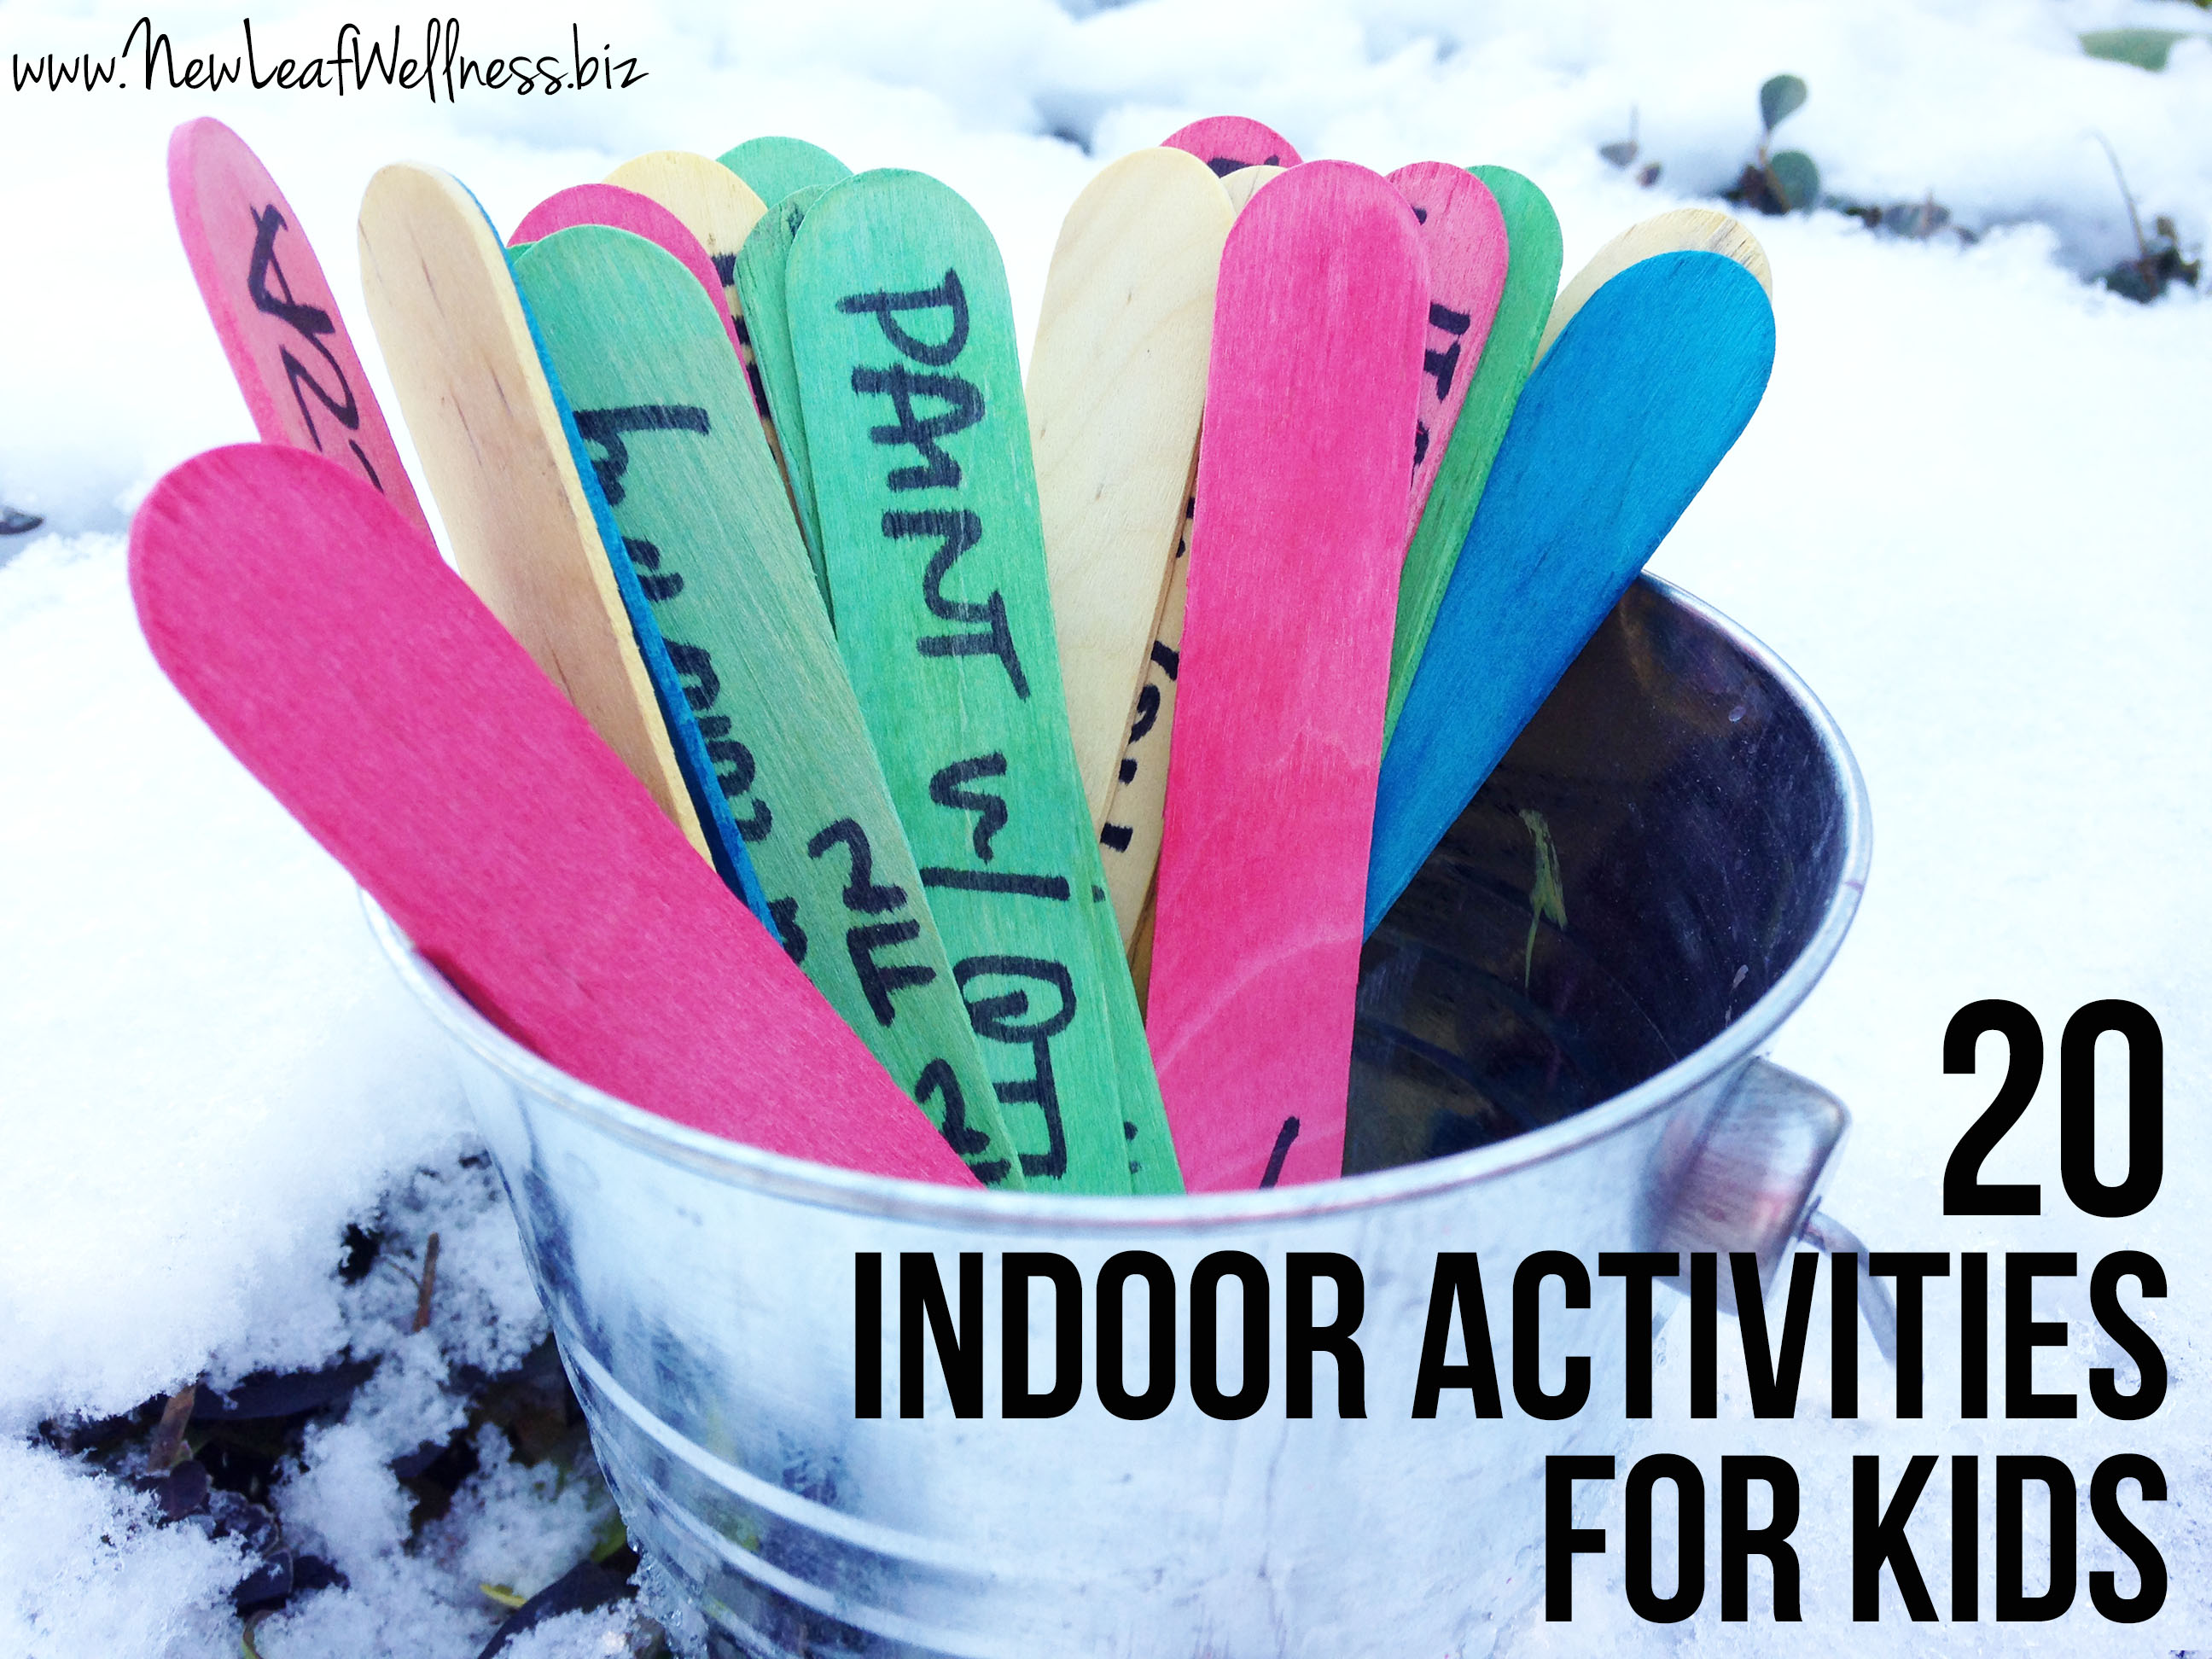 20 Indoor Activities for Kids